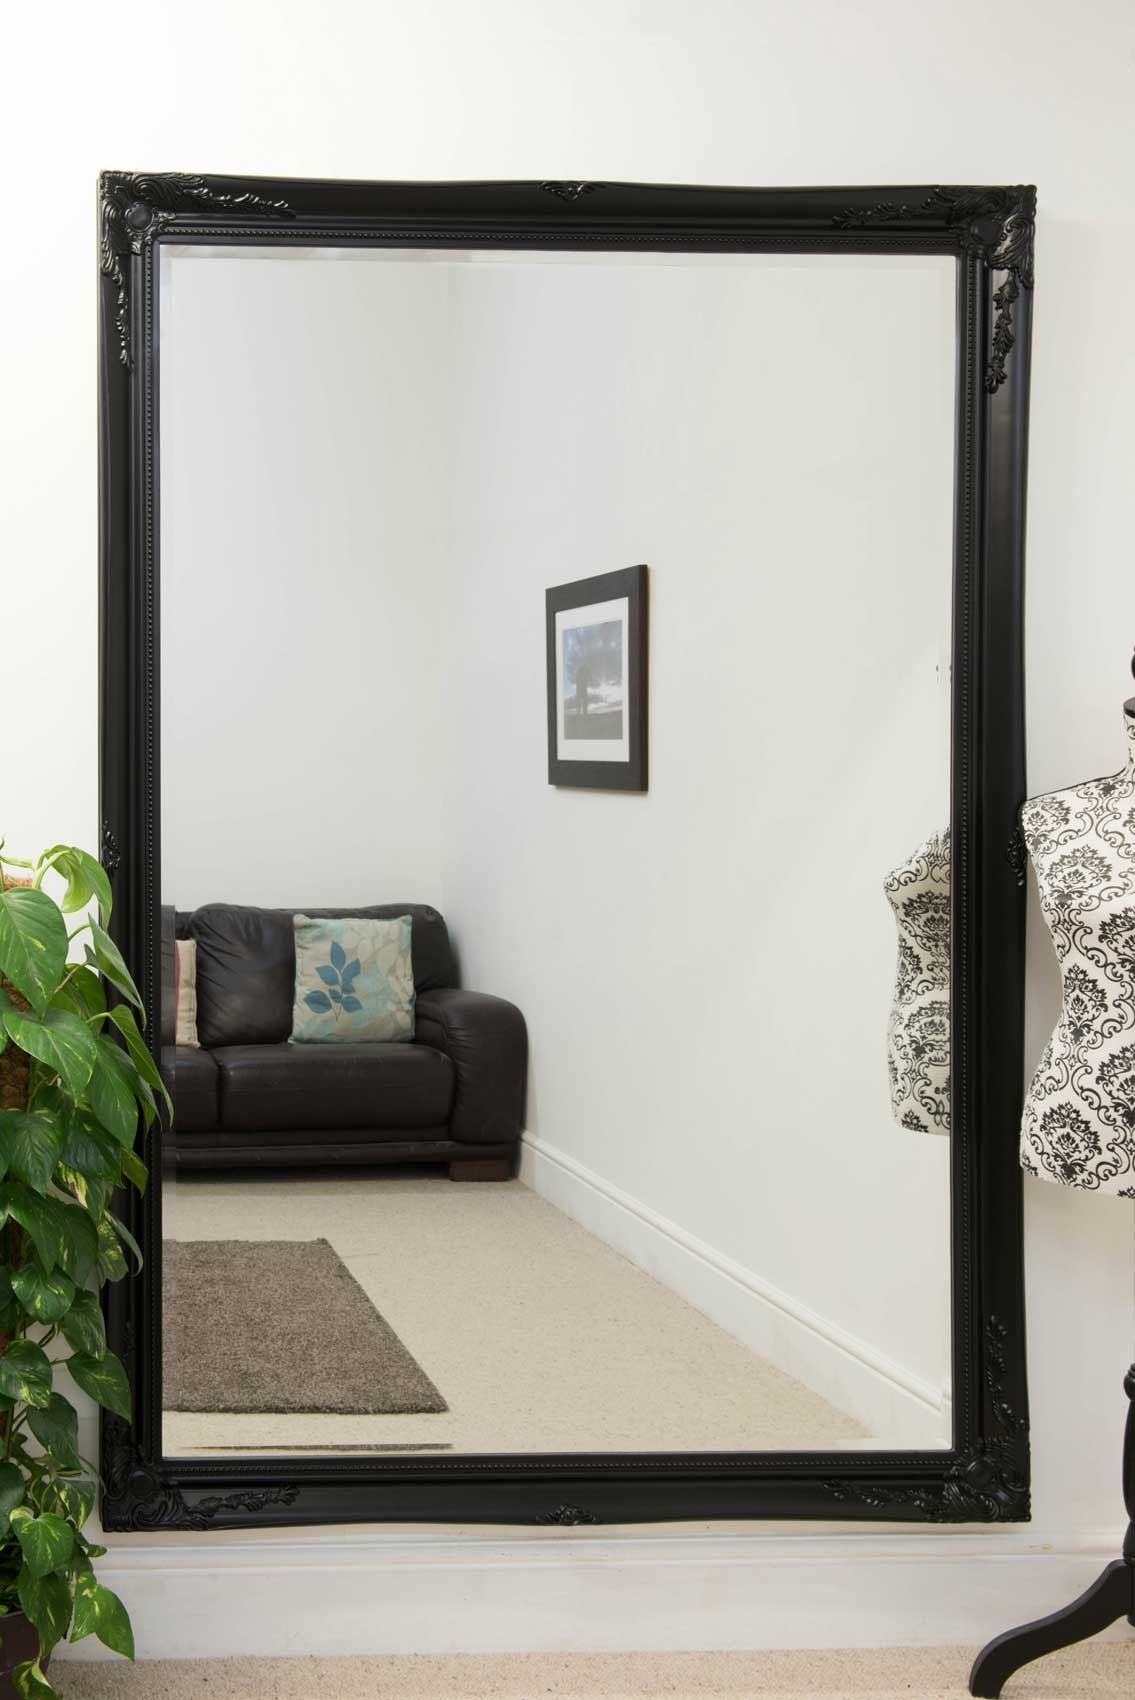 Extra Large Classic Ornate Styled Black Mirror 6ft7 X 4ft7 201cm Regarding Extra Large Black Mirror (View 6 of 15)